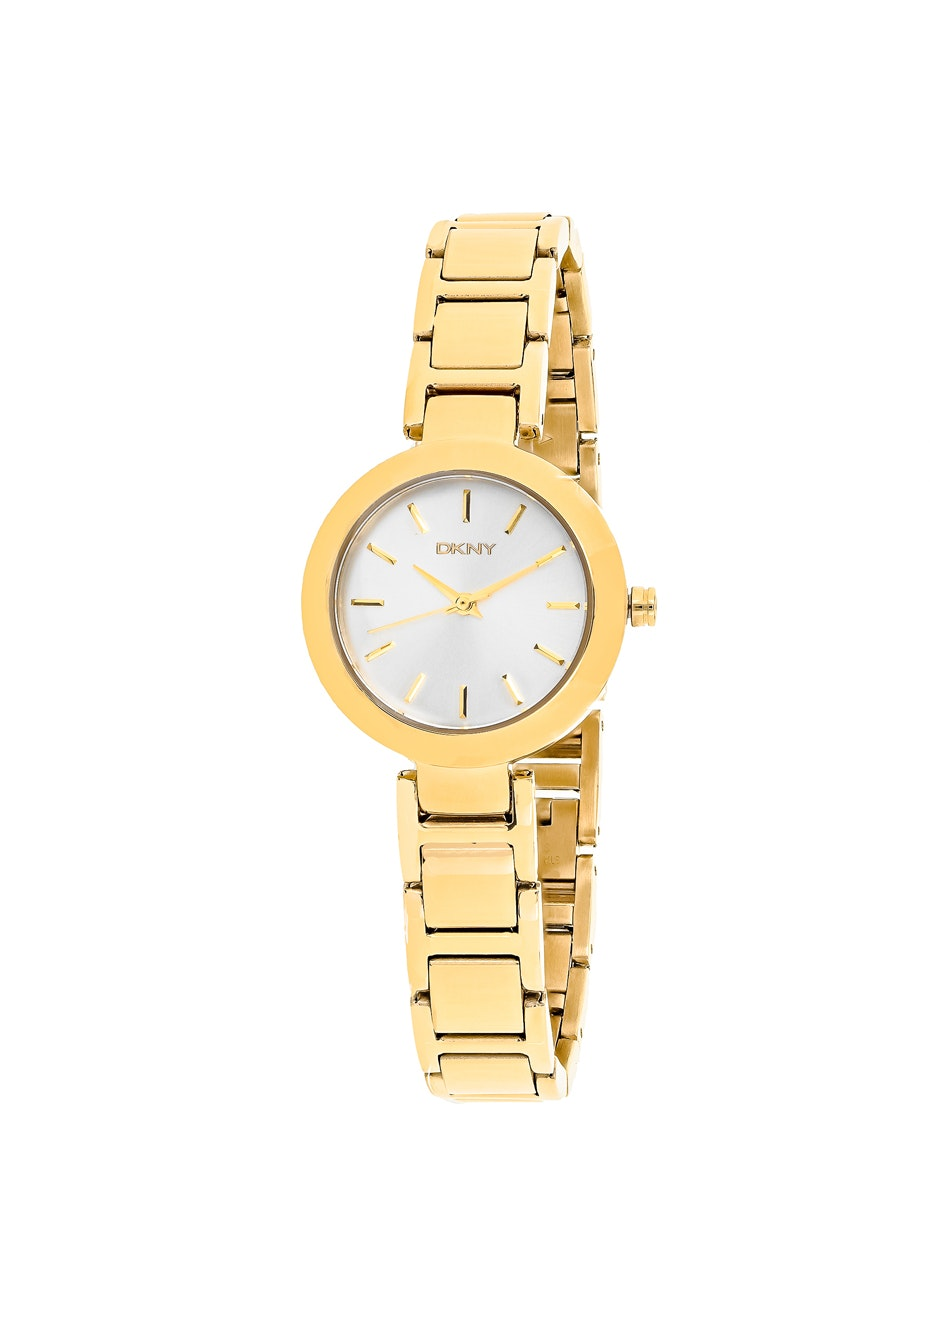 DKNY Women's Stanhope - Silver/Gold